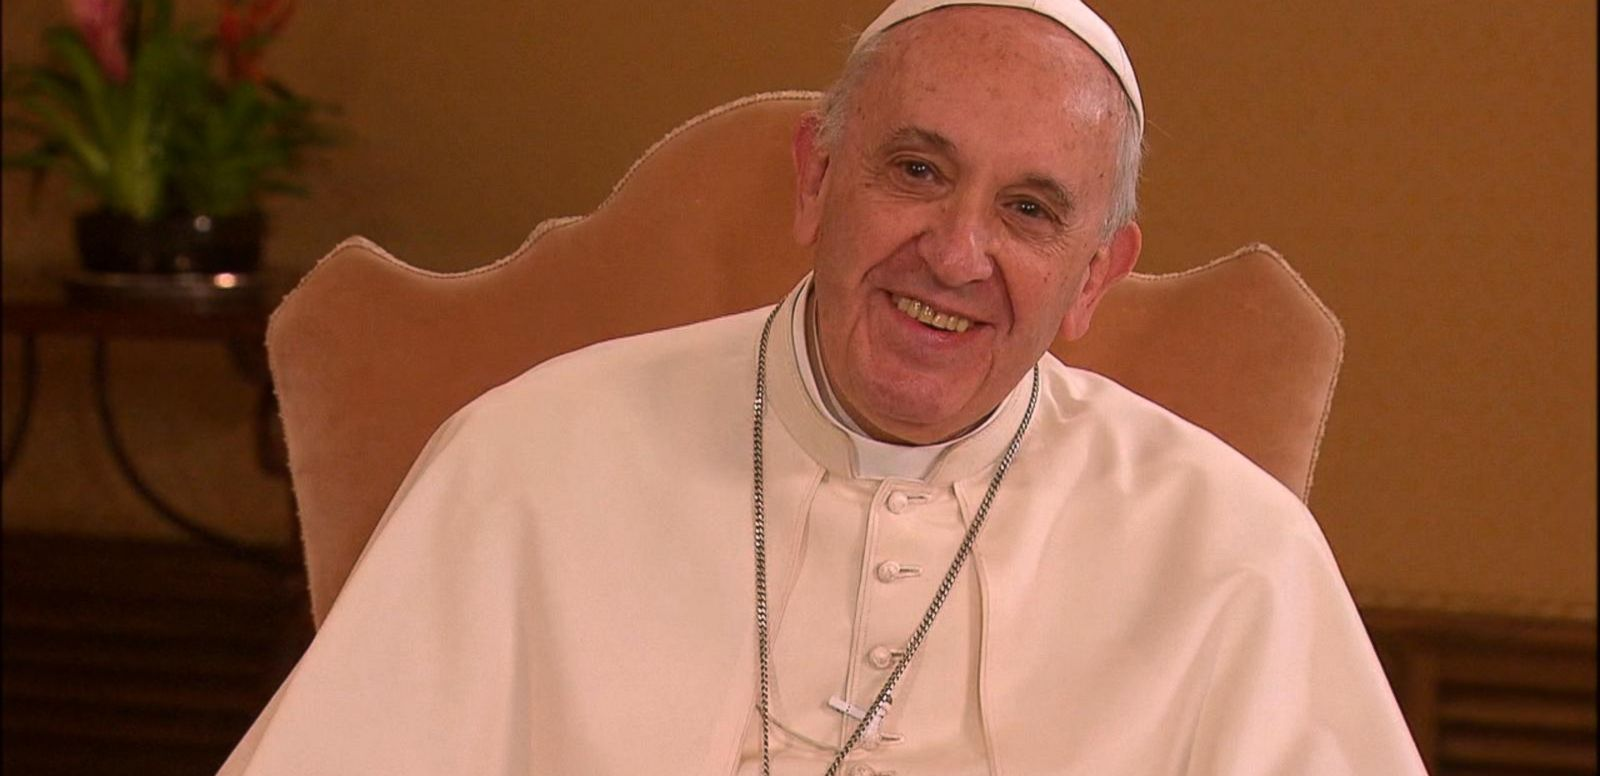 VIDEO: Pope Francis Tackles Potentially Sensitive Issues at Virtual Meeting